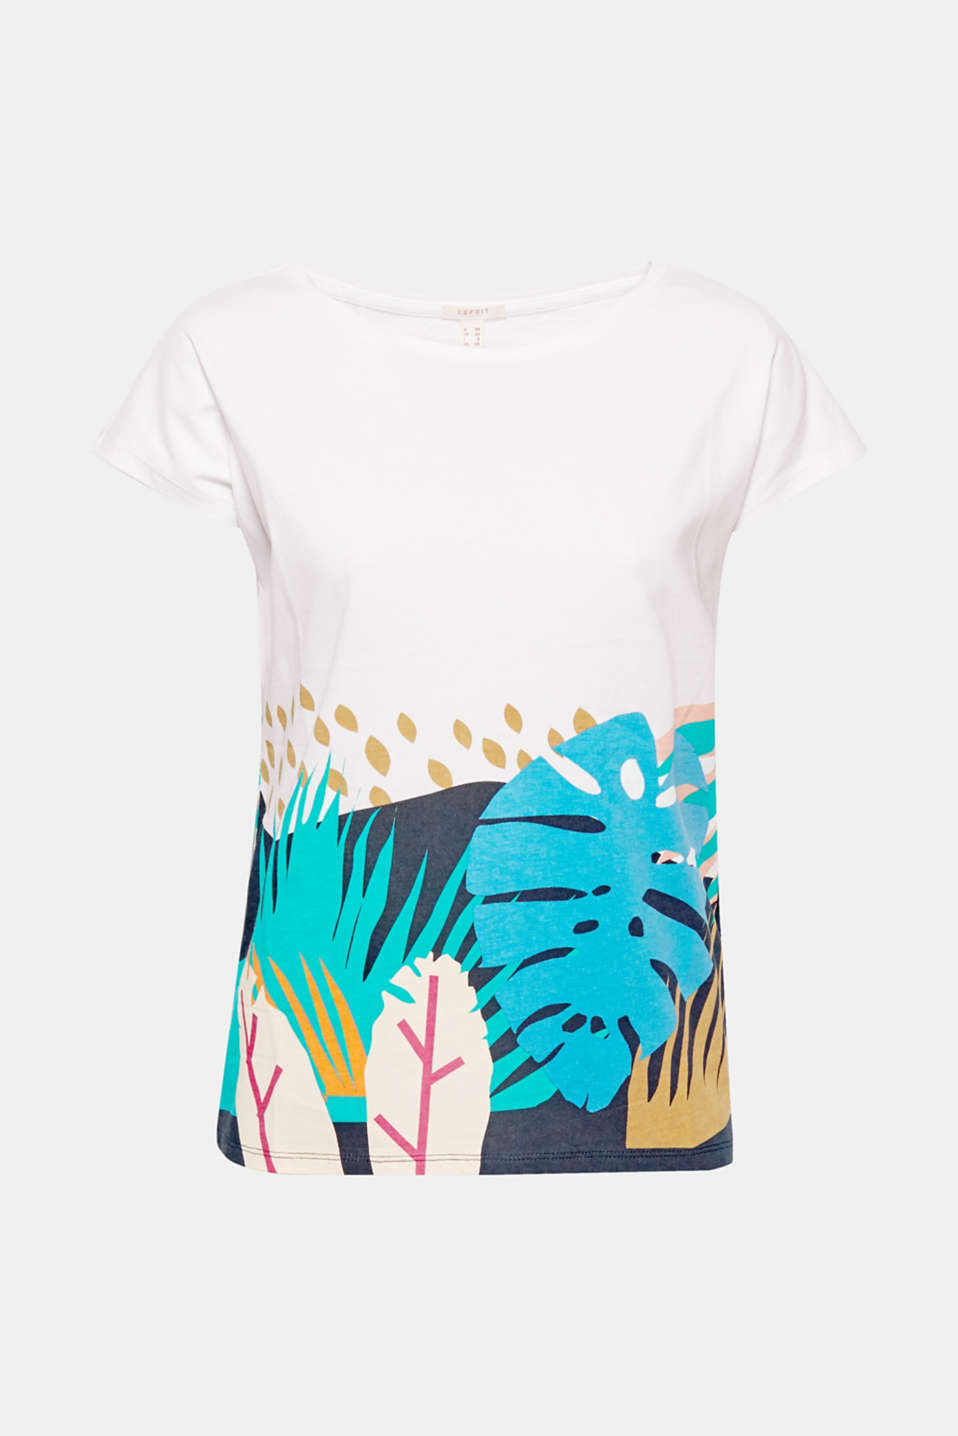 Welcome to the jungle! The colourful print with tropical plants makes this T-shirt a summery head-turner.